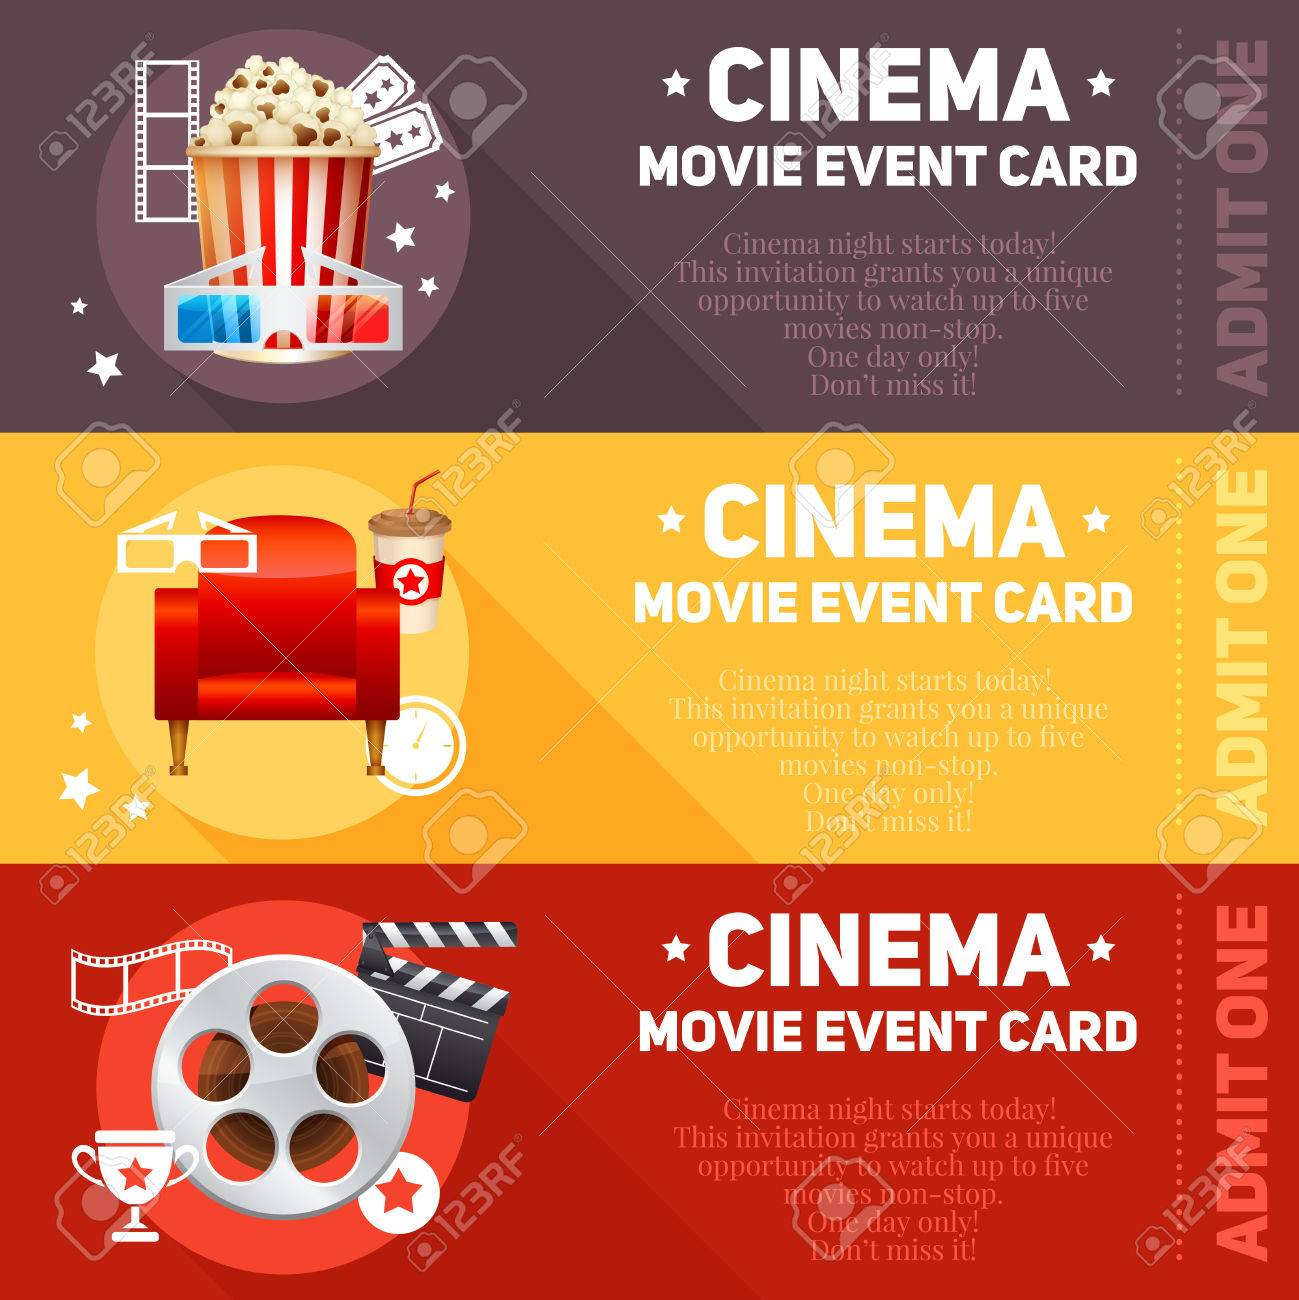 Realistic Cinema Movie Poster Template With Film Reel Clapper Popcorn 3D Glasses Conceptbanners Bokeh Stock